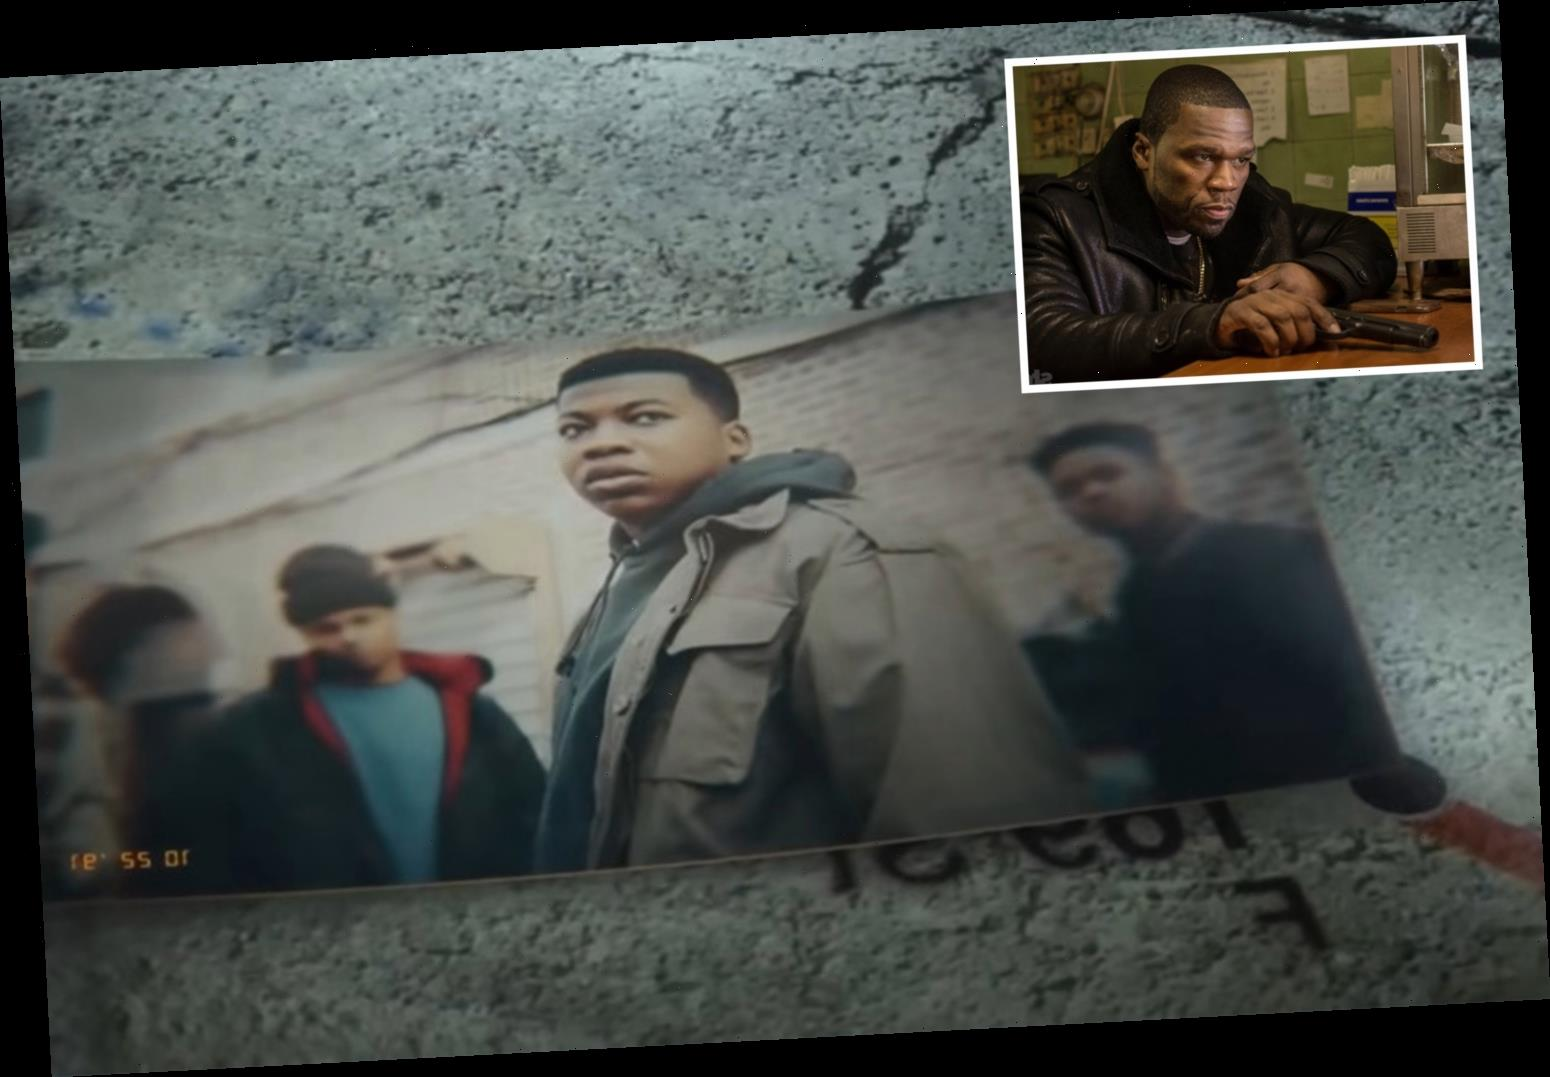 Power Book III: Raising Kanan gets first look trailer at 50 Cent's character's teen years